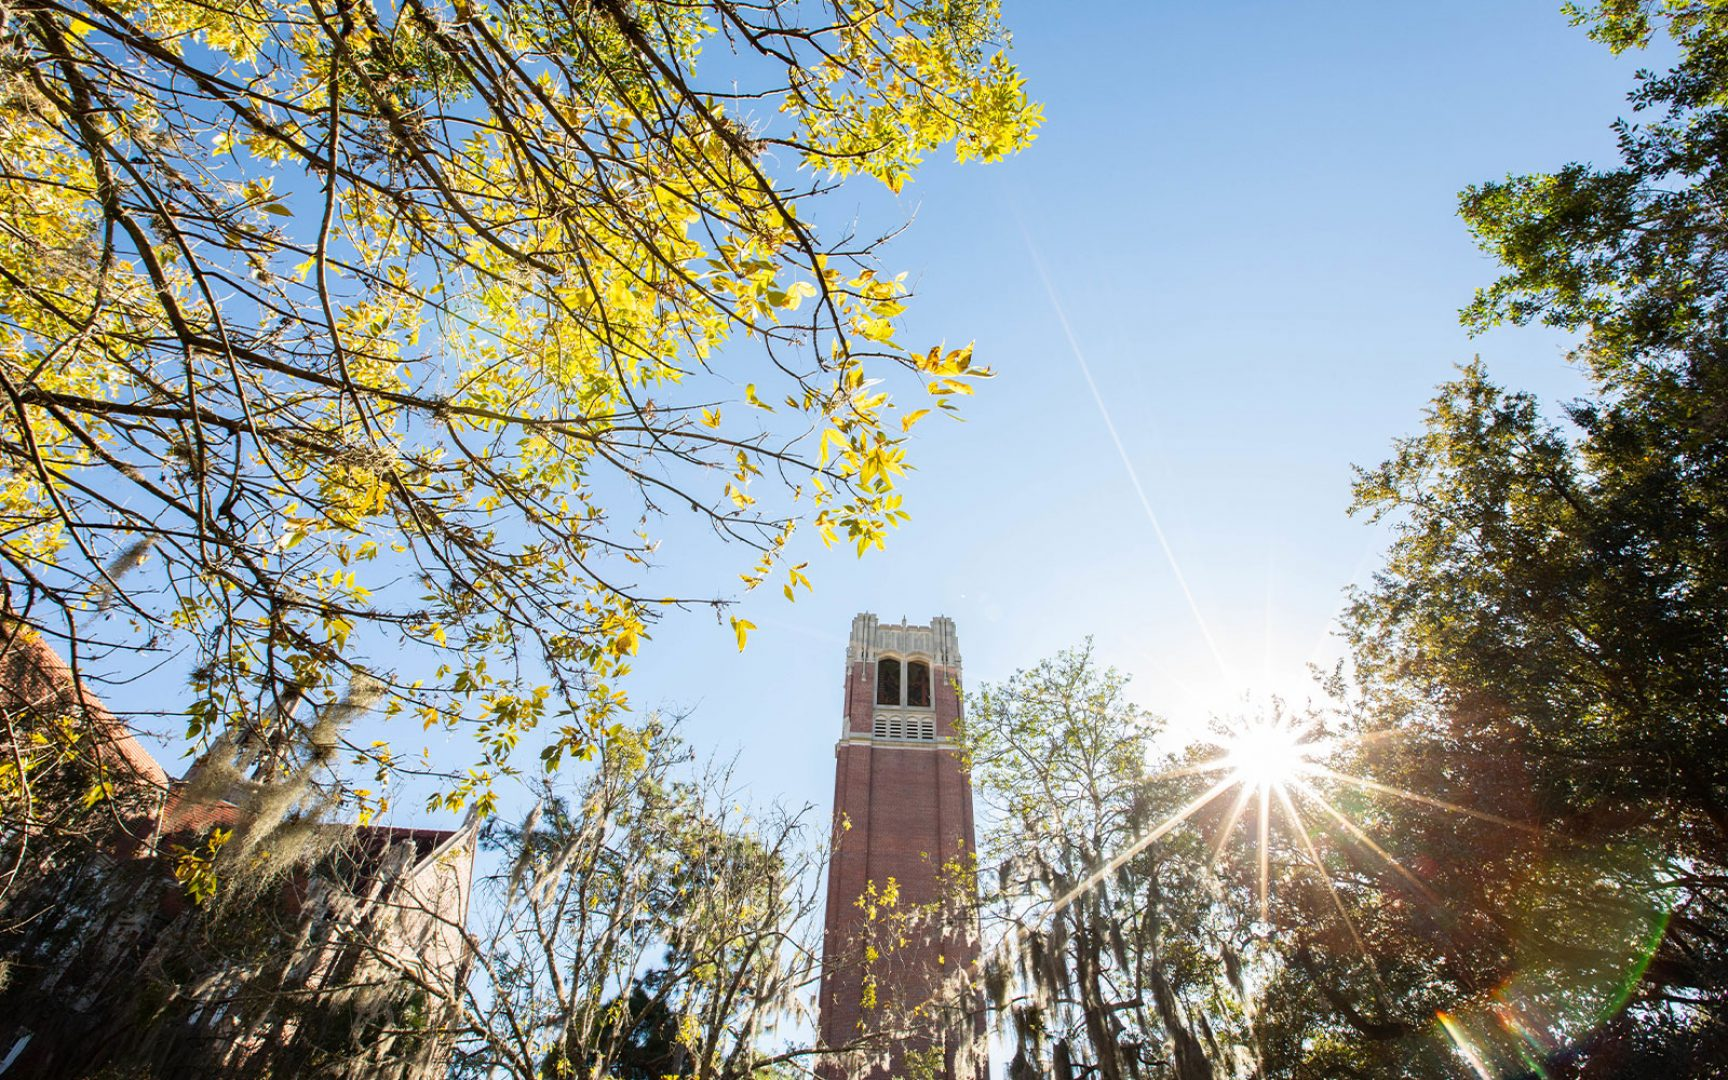 Upshot of a tall brick tower through the tree branches and sun shining down